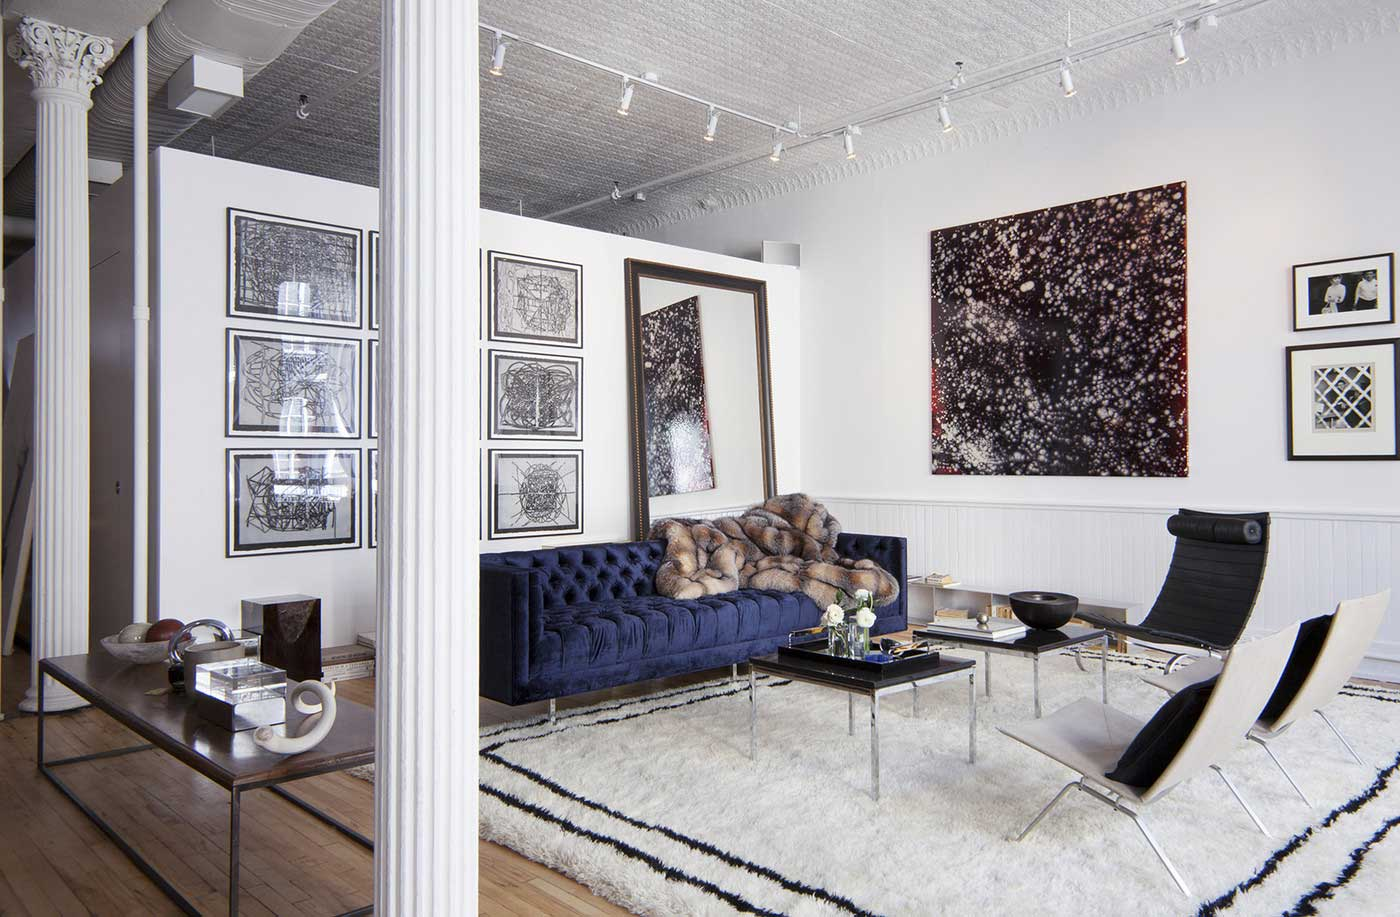 The apartment nyc by the line yellowtrace for Sofas in nyc